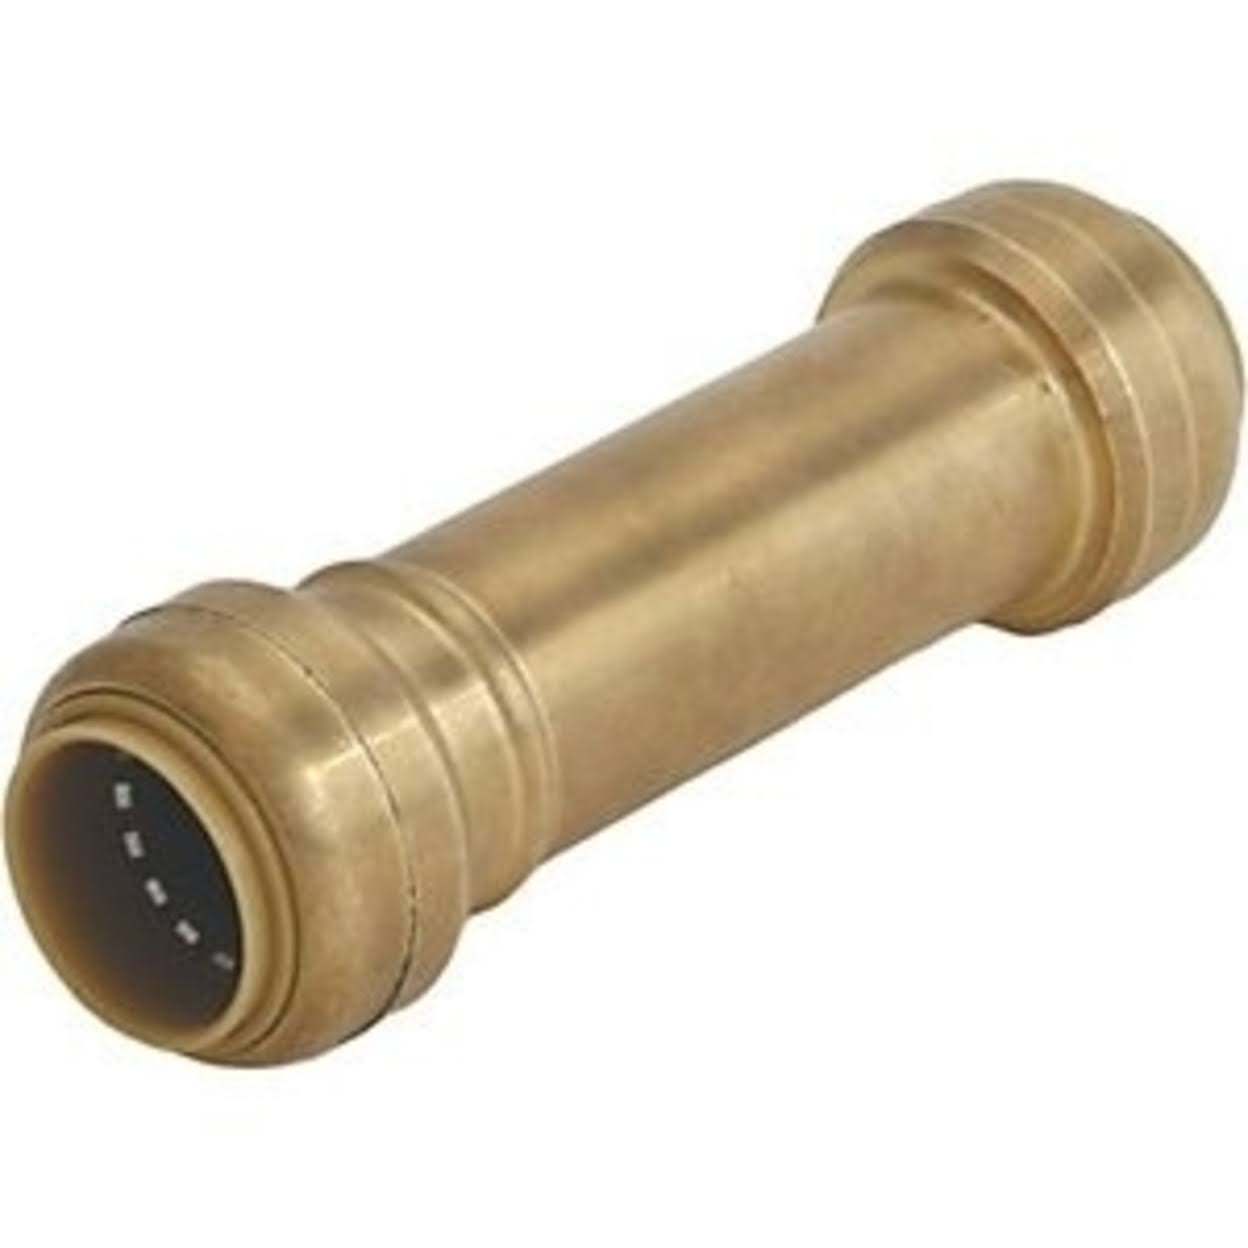 "Cash Acme Sharkbite Push-To-Connect Slip Coupling - 3/4"", Brass"